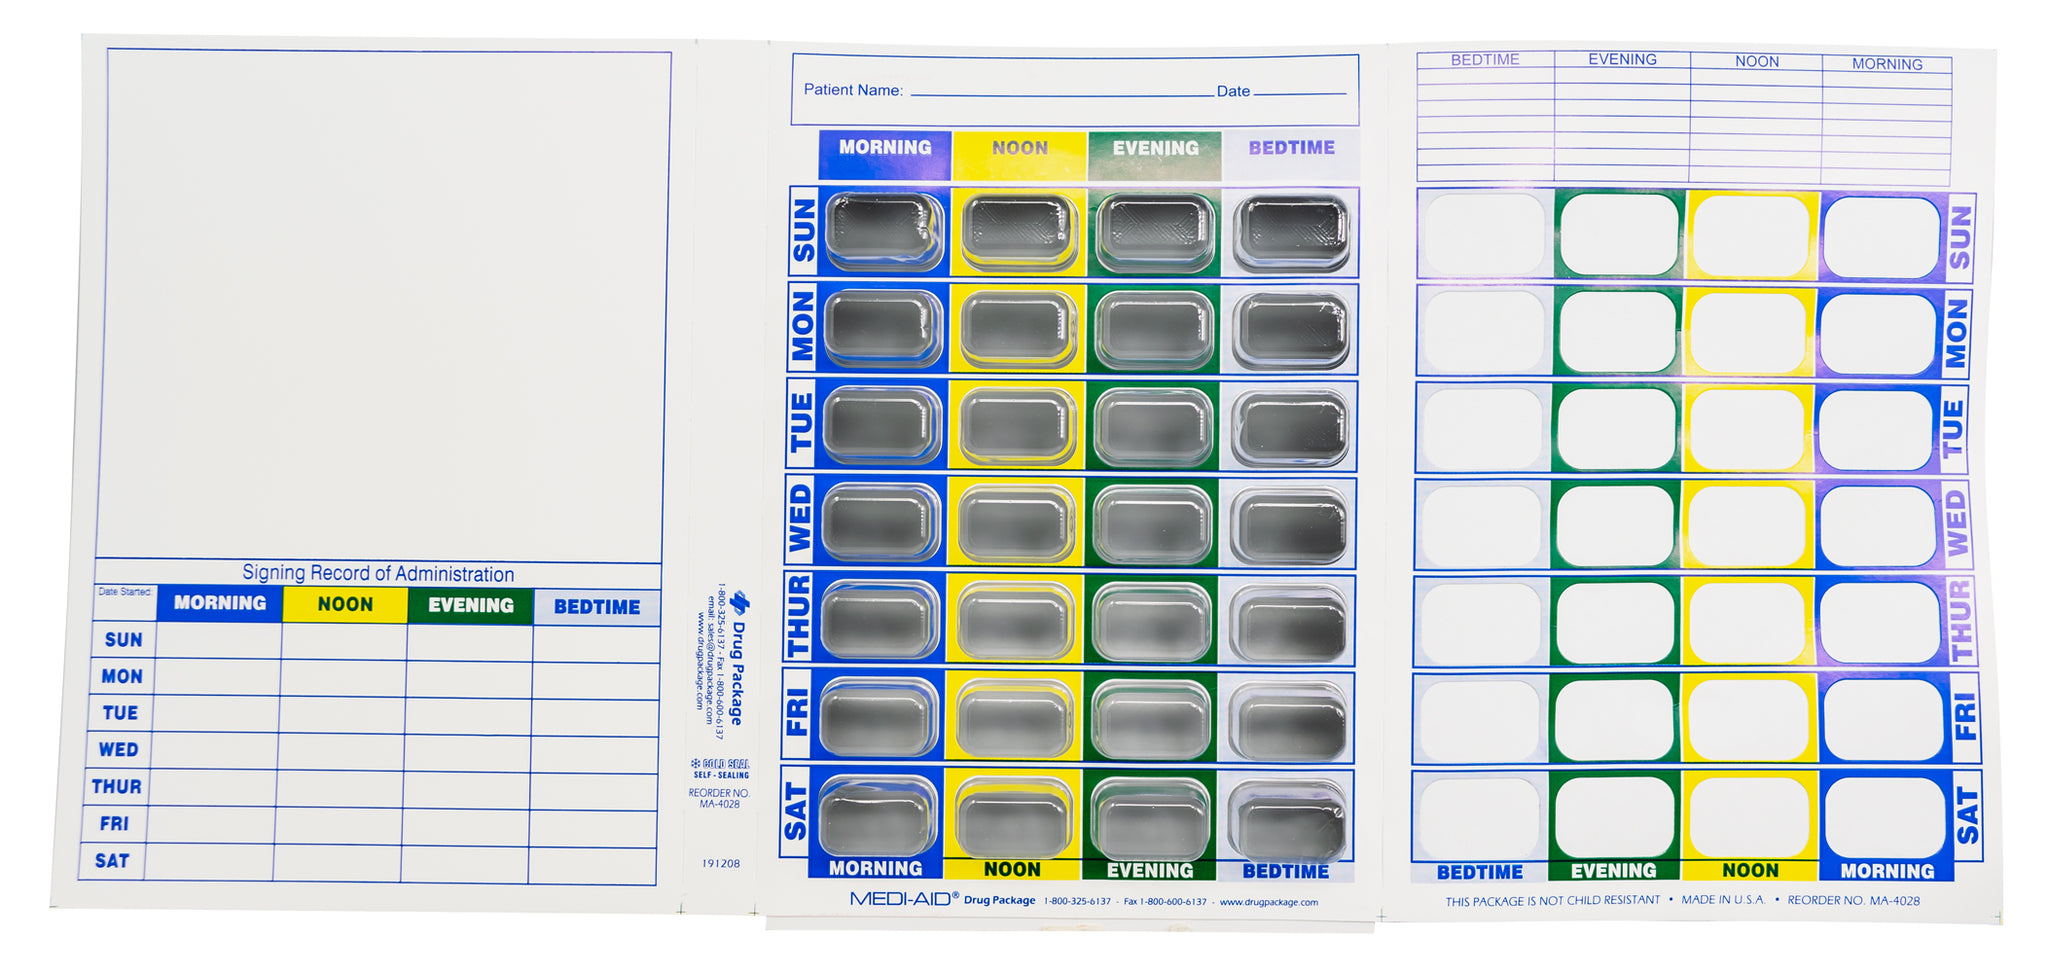 Weekly XL, 4 Time a Day, Cold Seal Medication Blister Cards - Tri-Fold Booklet 6 Pack